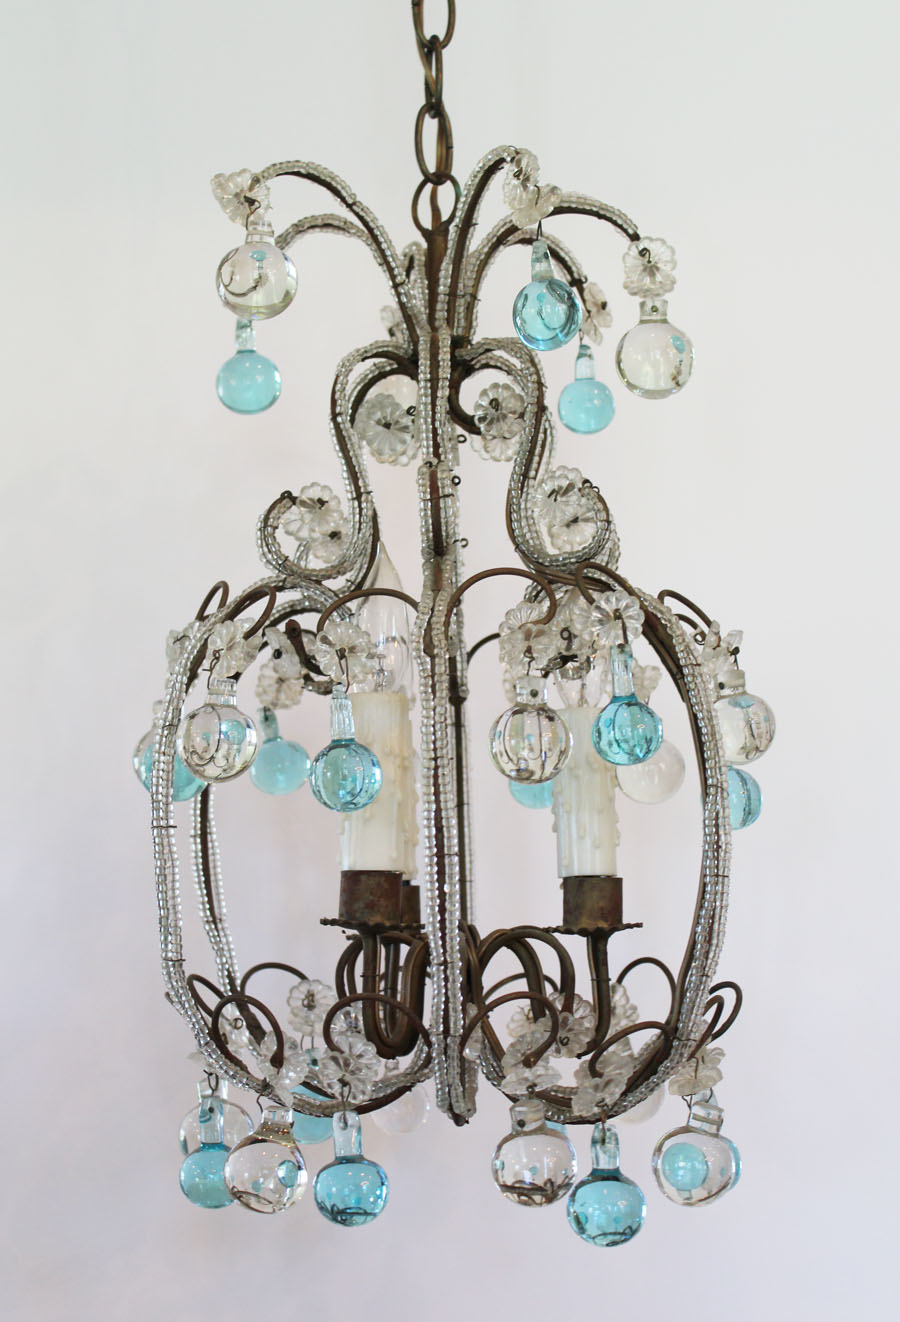 Antique Italian Rare Aqua Beaded Baubles Chandelier